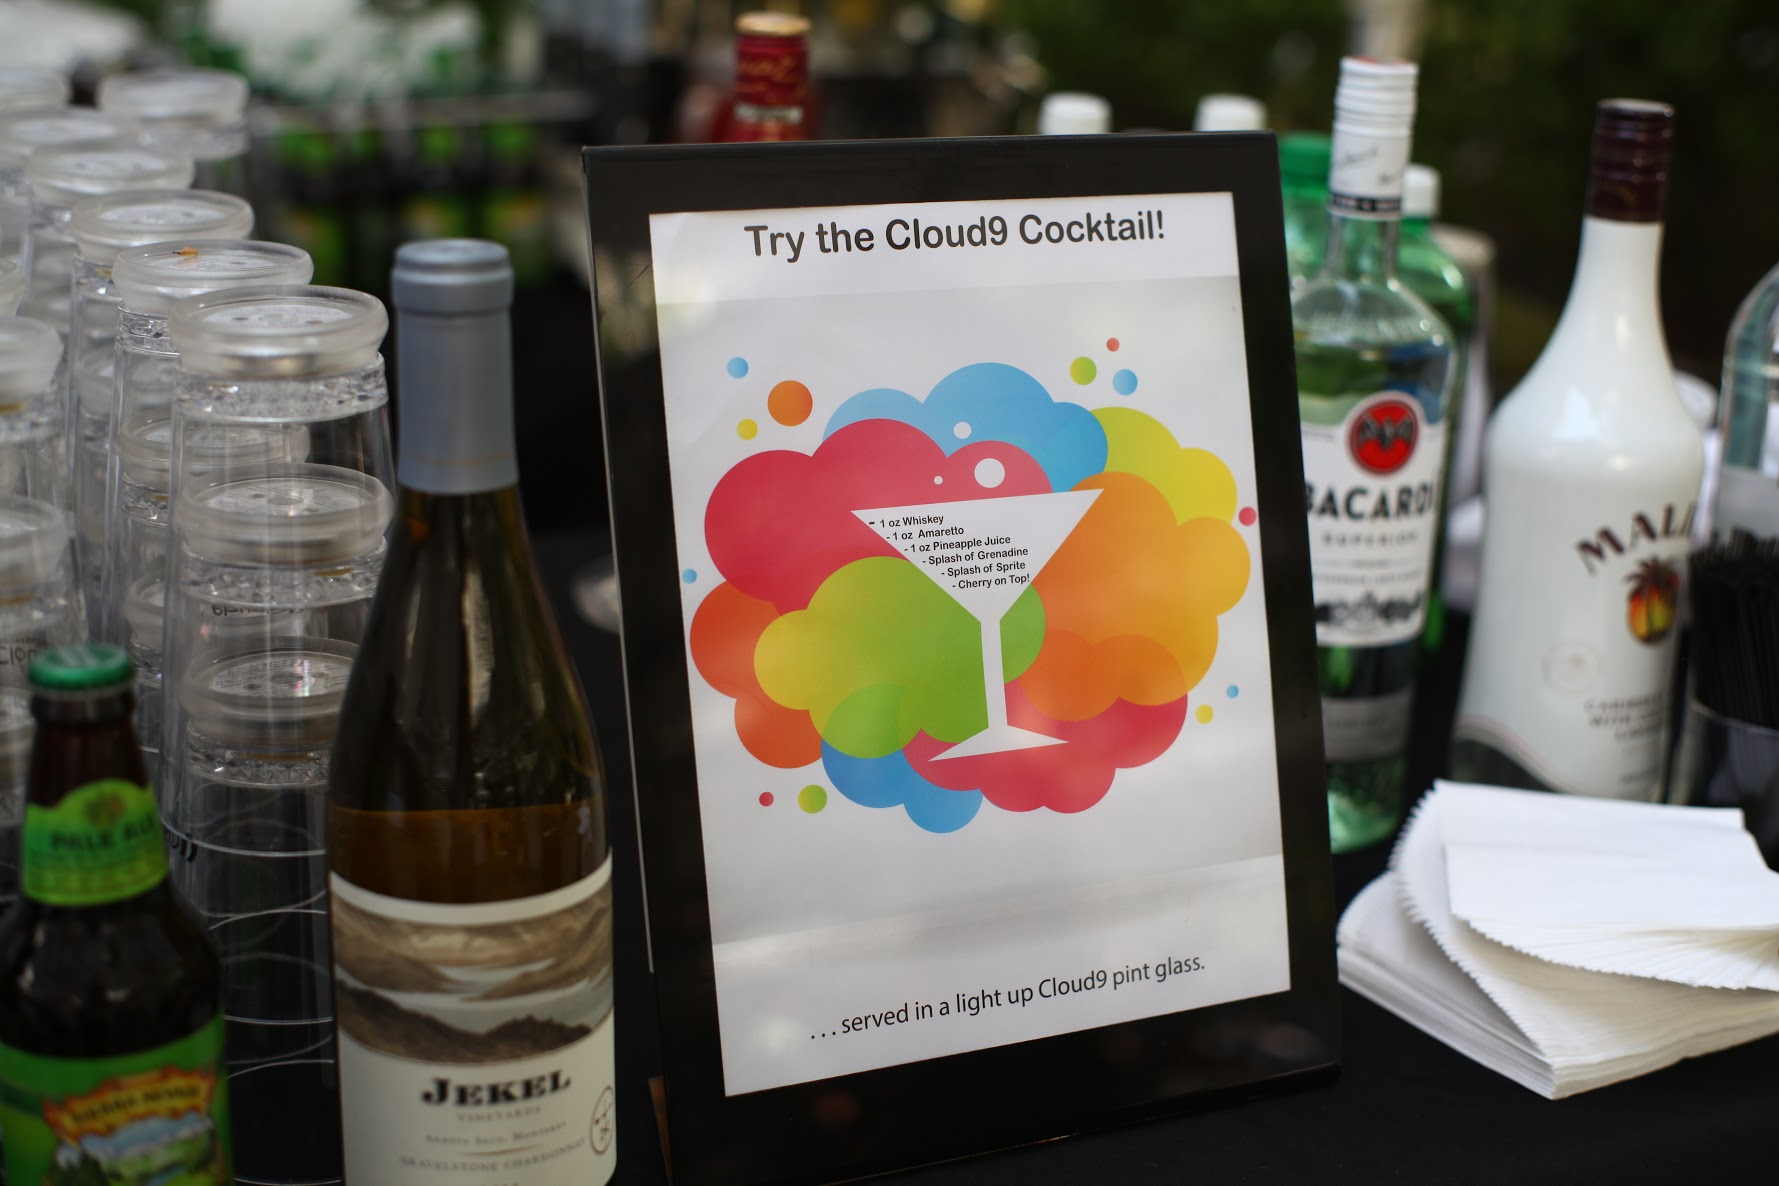 Bryant Park Grill Created Our Own Cloud9 Cocktail